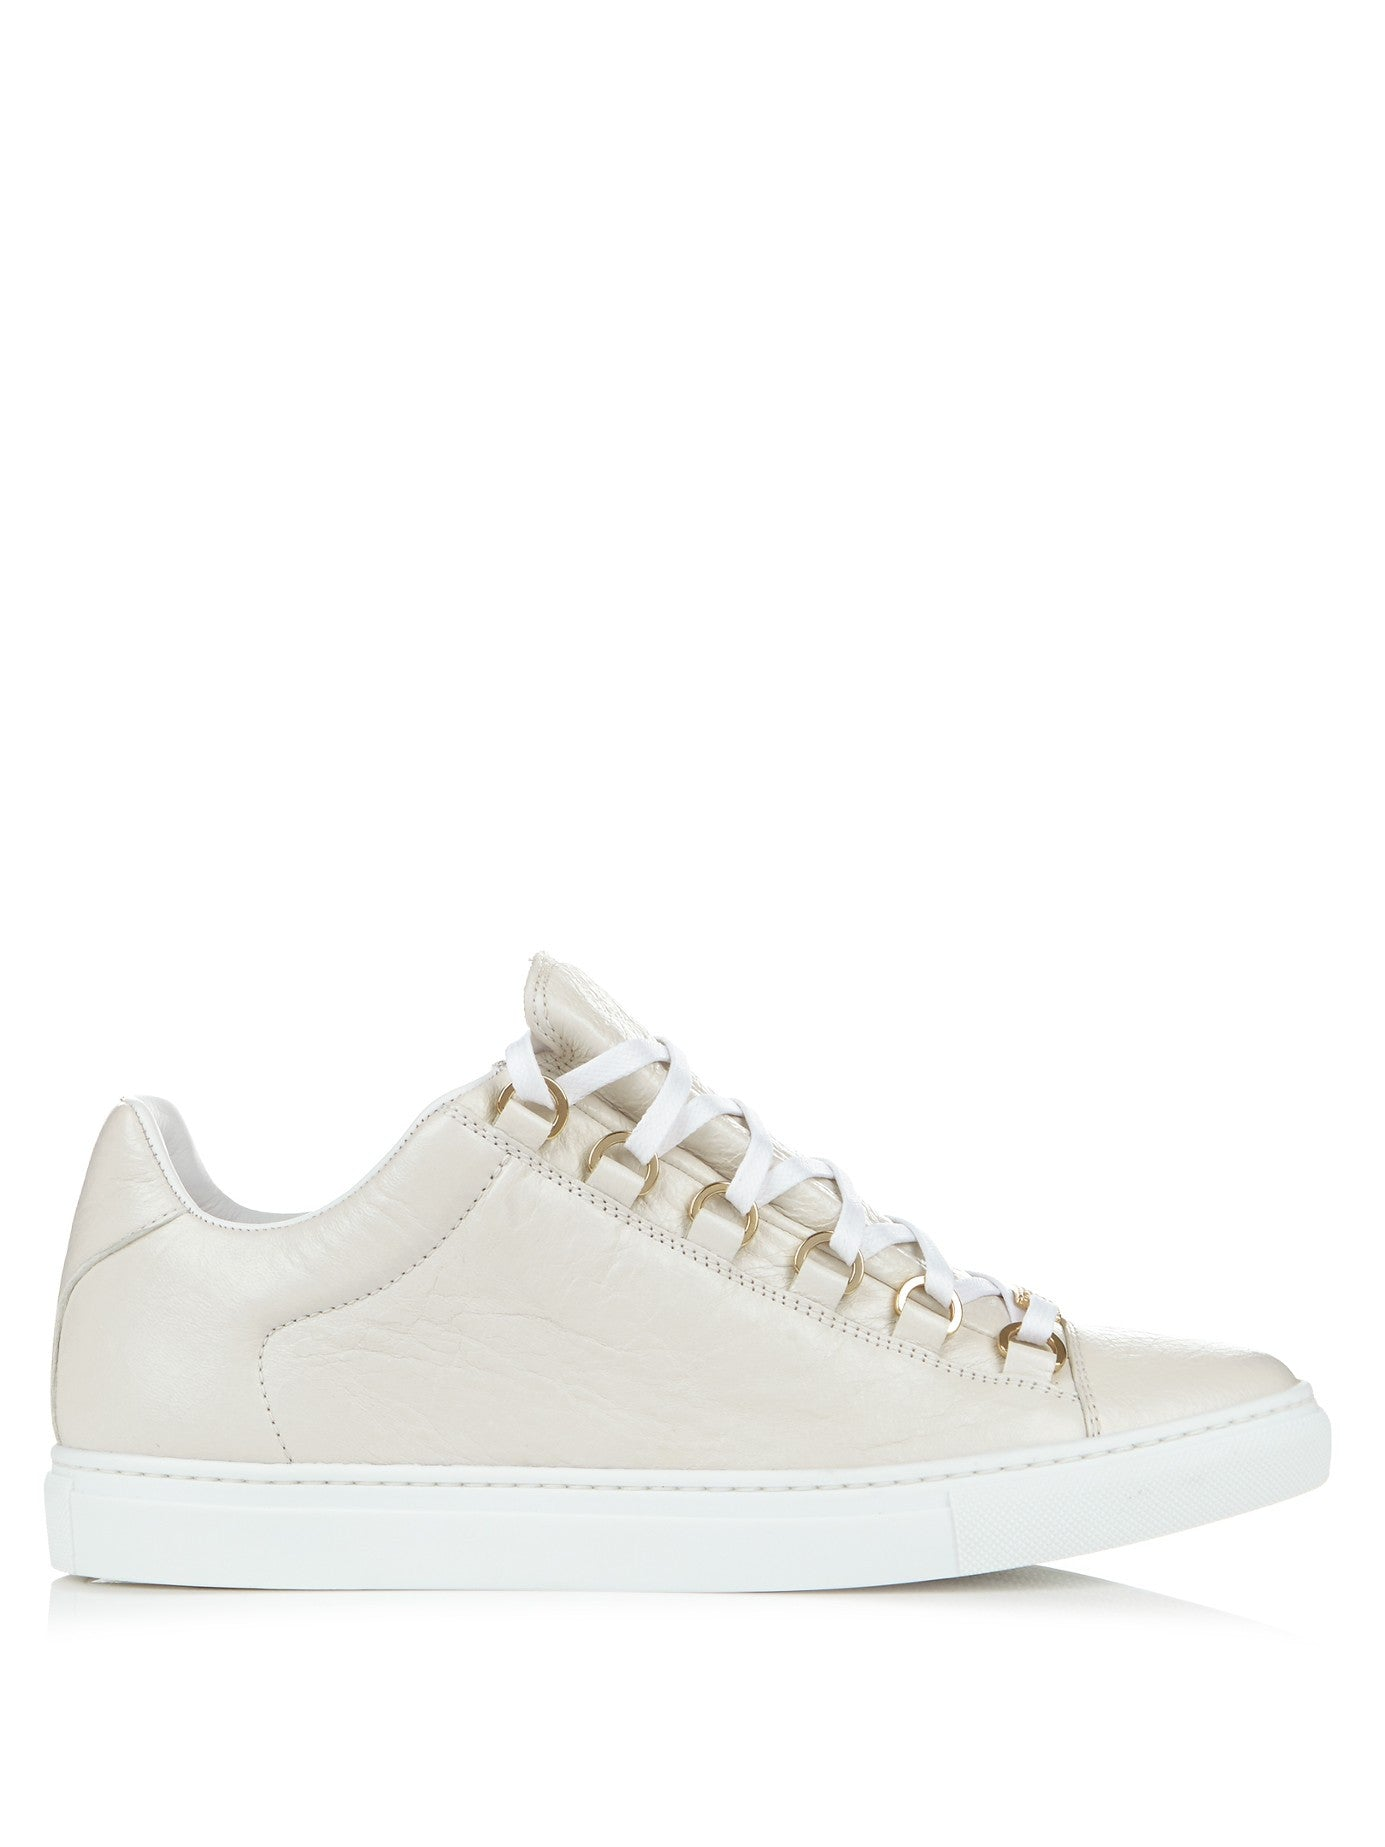 MatchesFashion Balenciaga Arena low top leather trainers